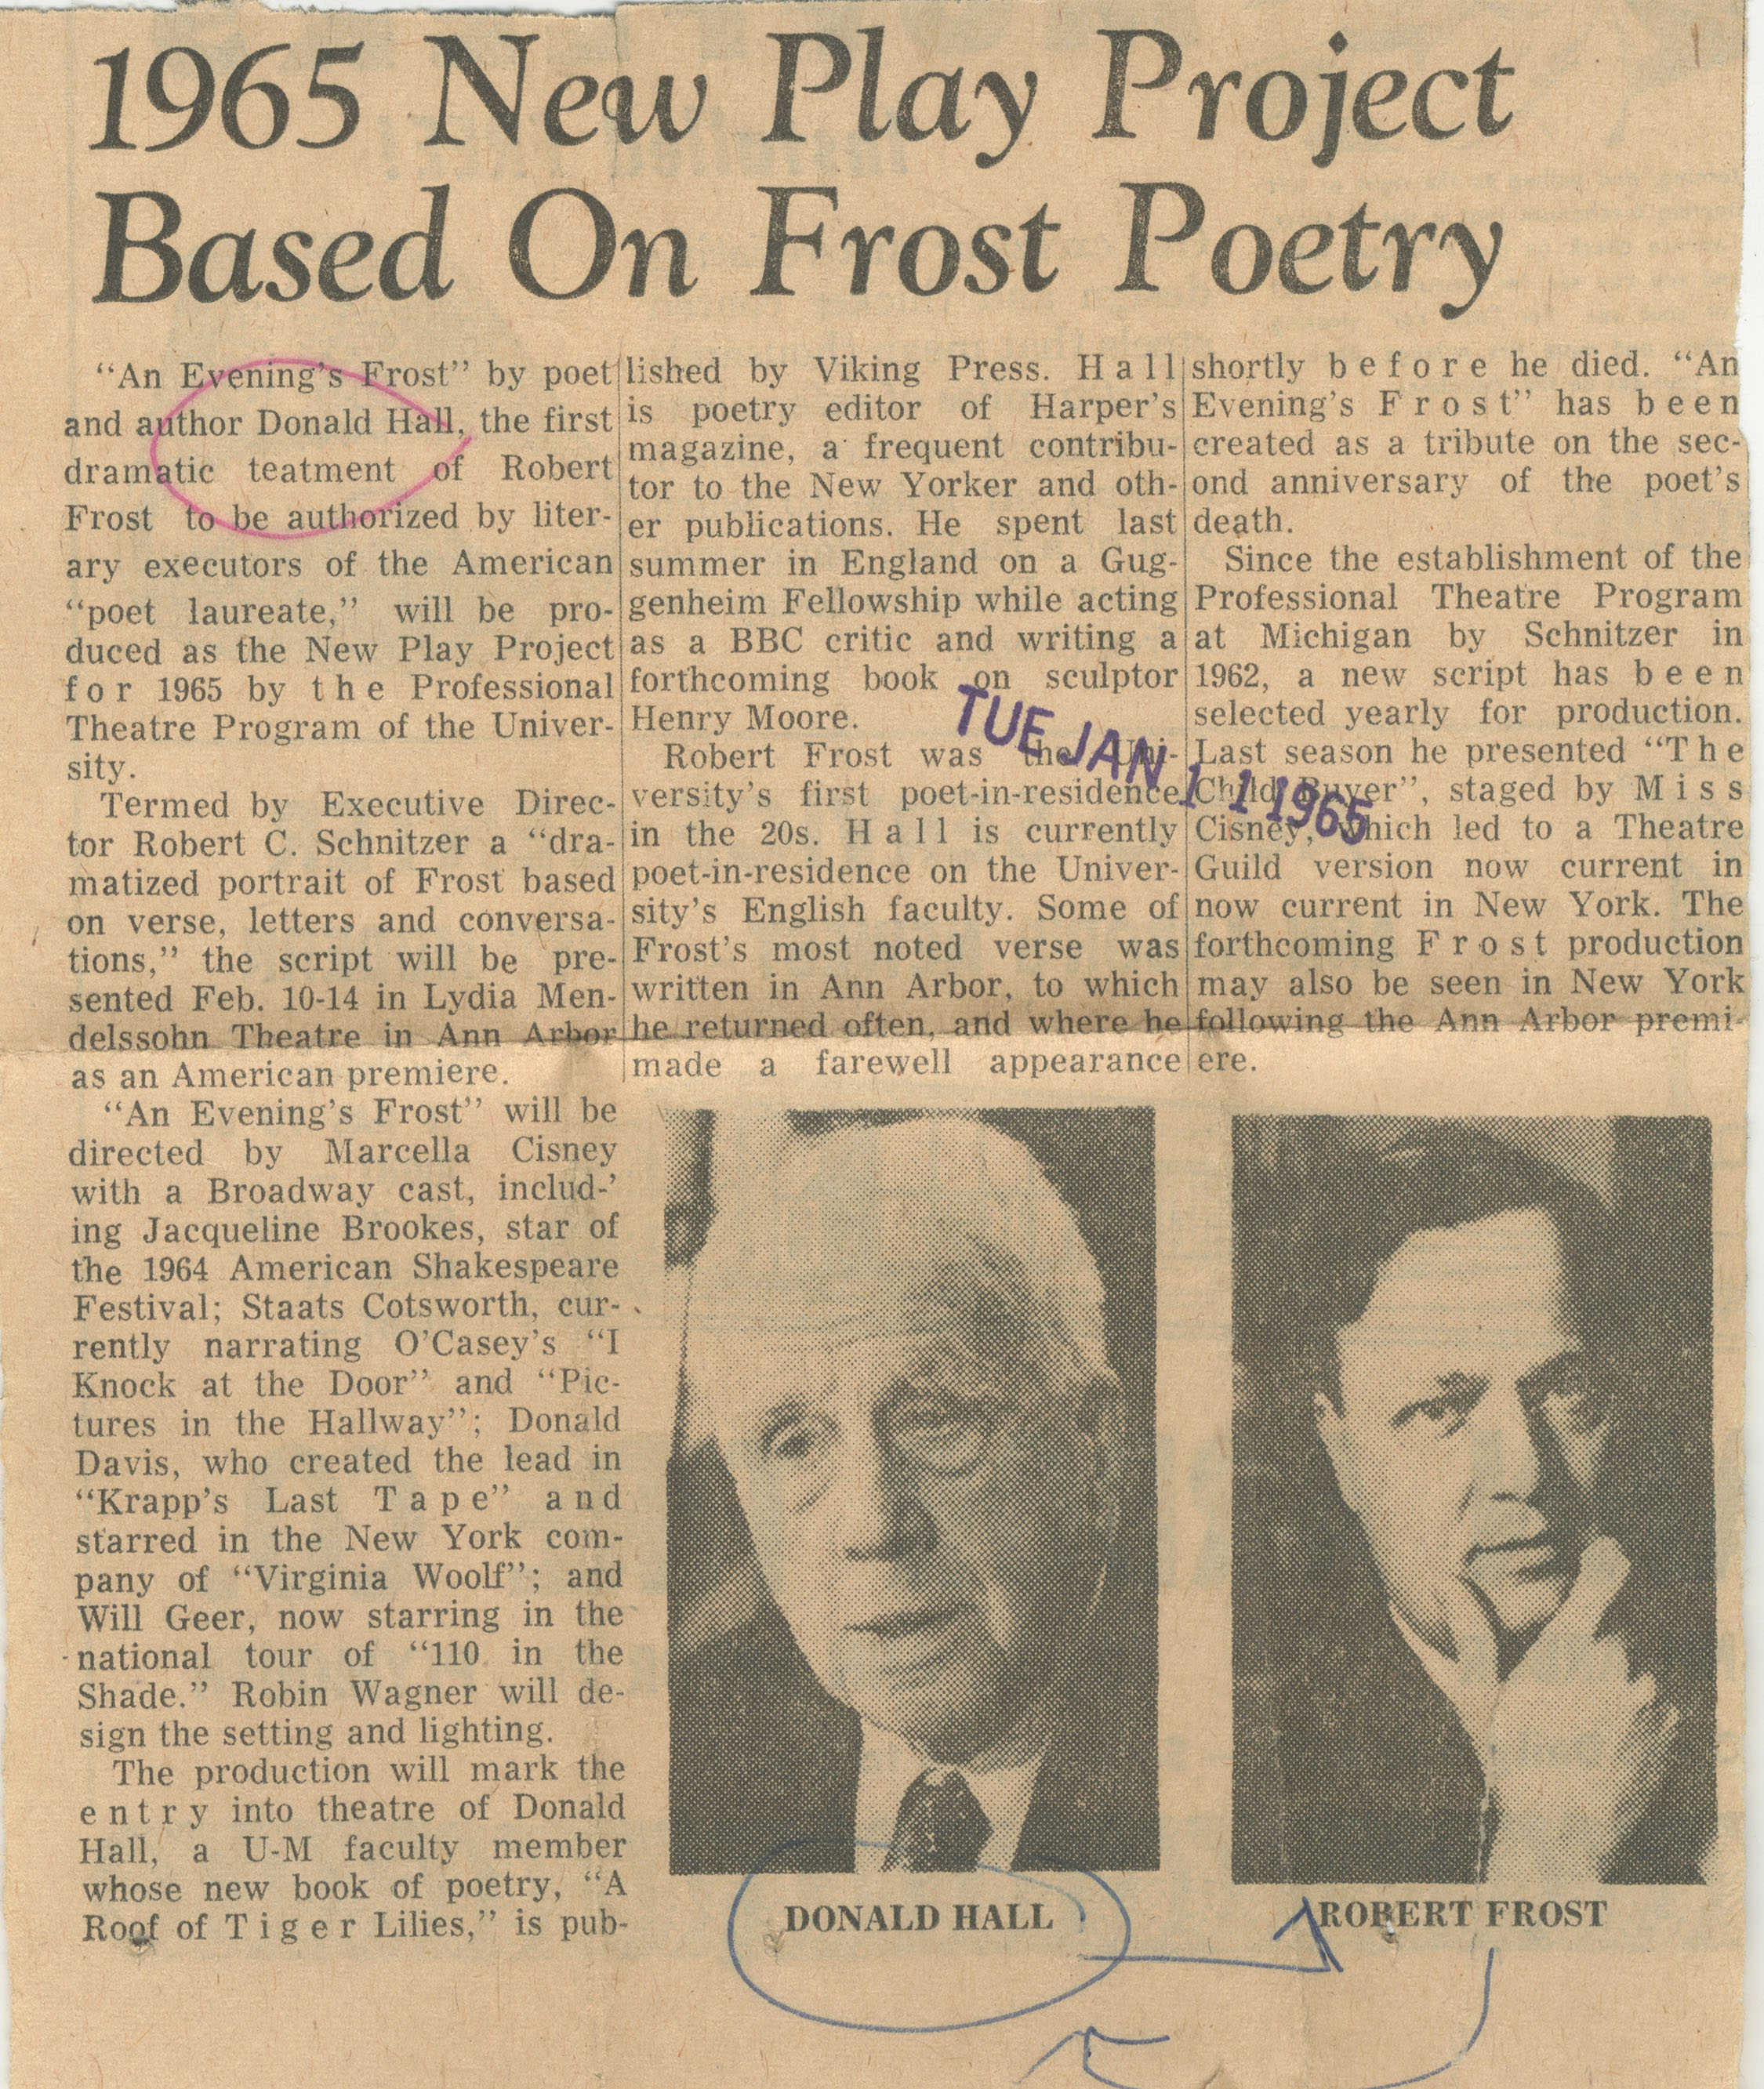 1965 New Play Project Based On Frost Poetry image